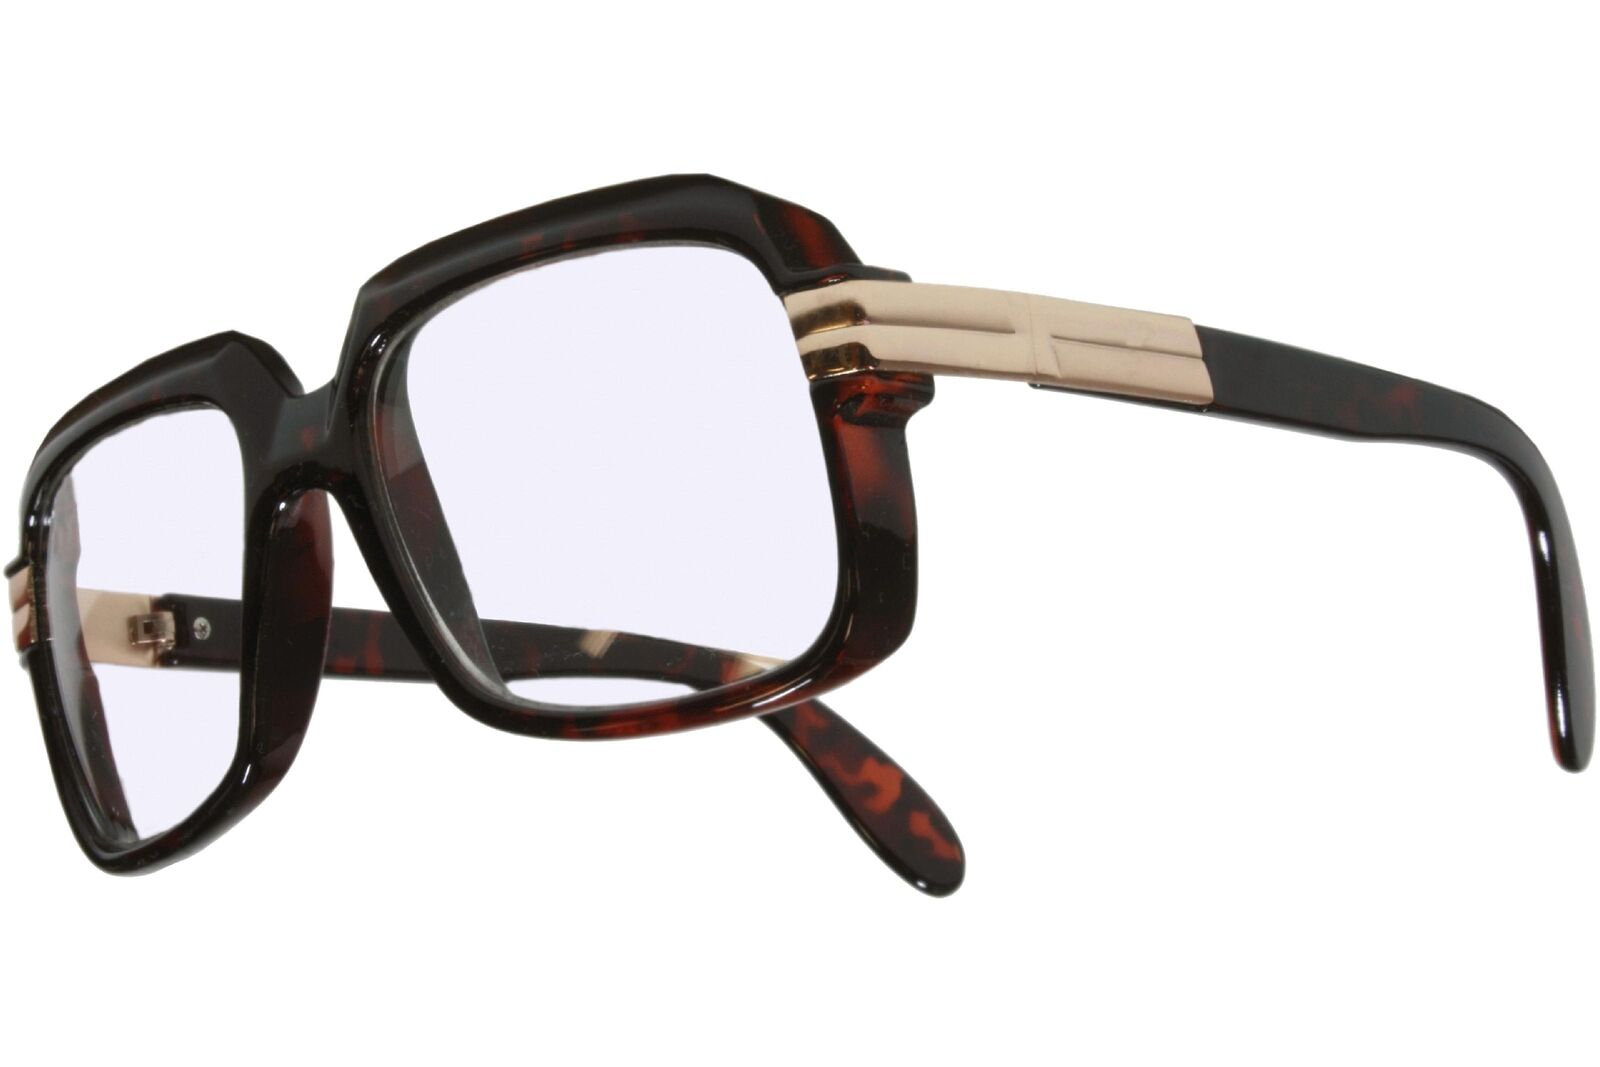 2c13d6442ec5 GogglesandGlasses is a veteran owned independent retailer of hand selected  basic eyewear. With over 14 years in business